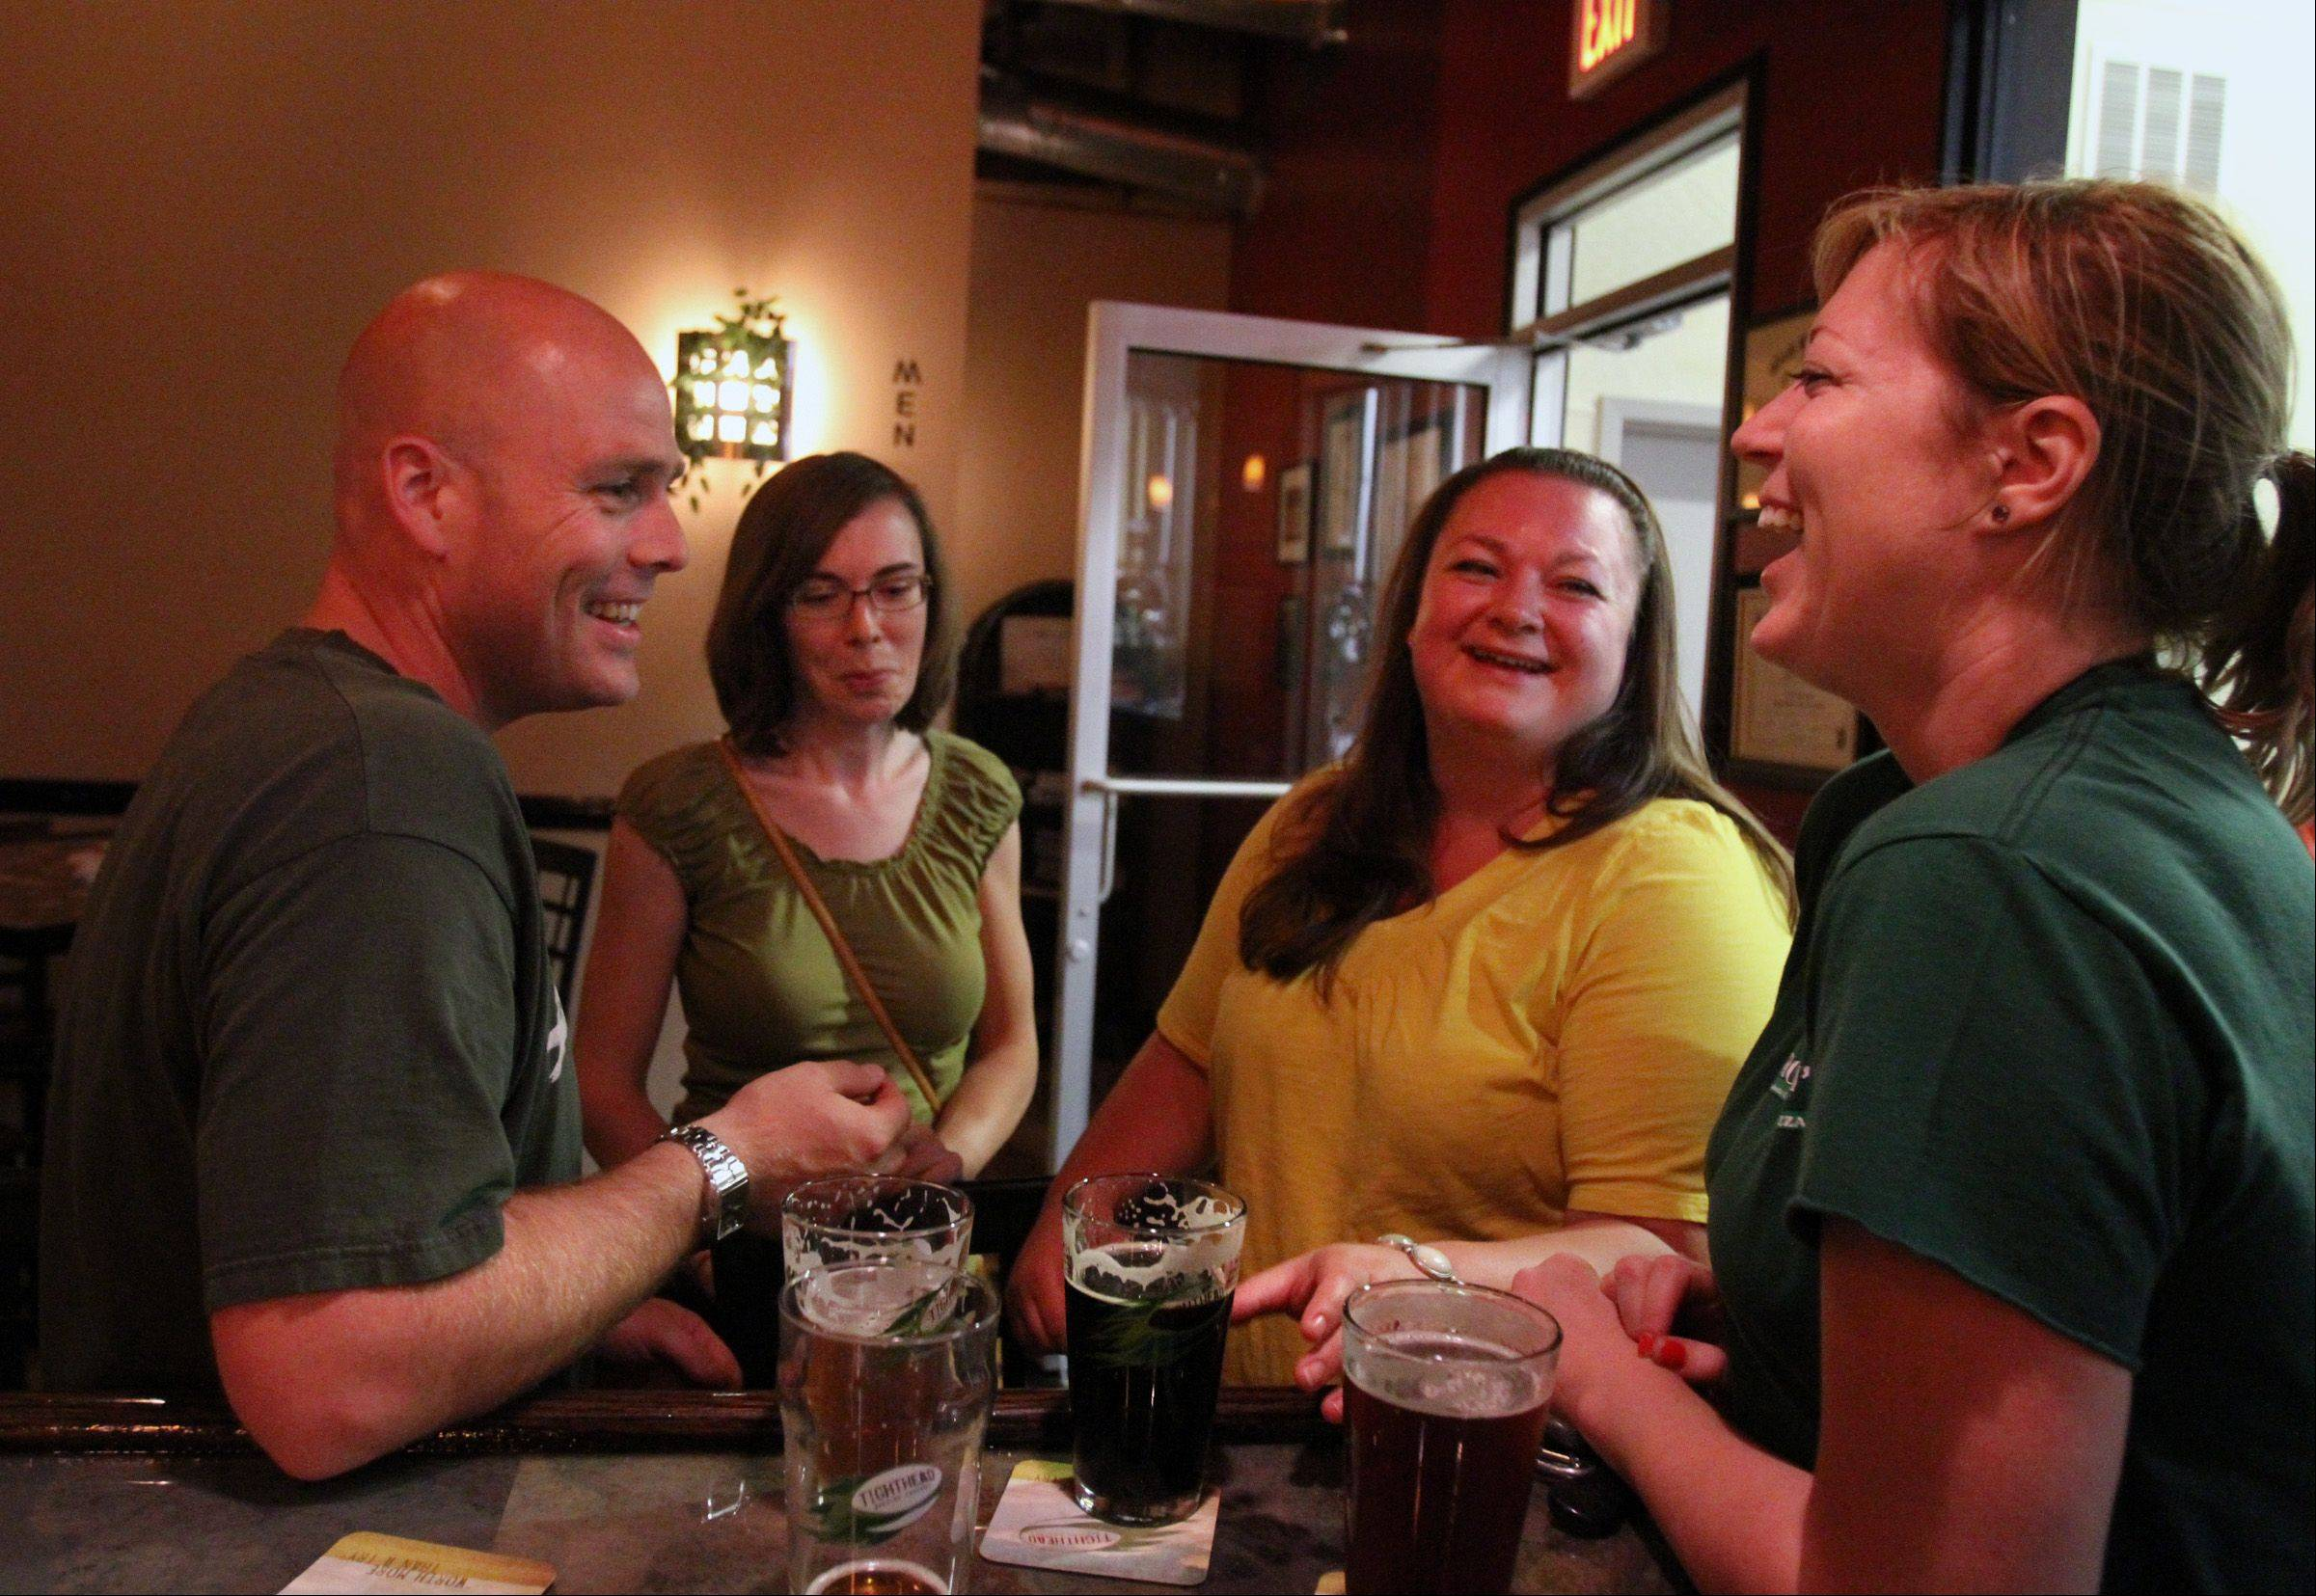 Pat O'Connell, left, Pat's wife Christina O'Connell, right, and Abby Hickman, far right, all of Libertyville, enjoy a night out at Tighthead Brewing Company in Mundelein.